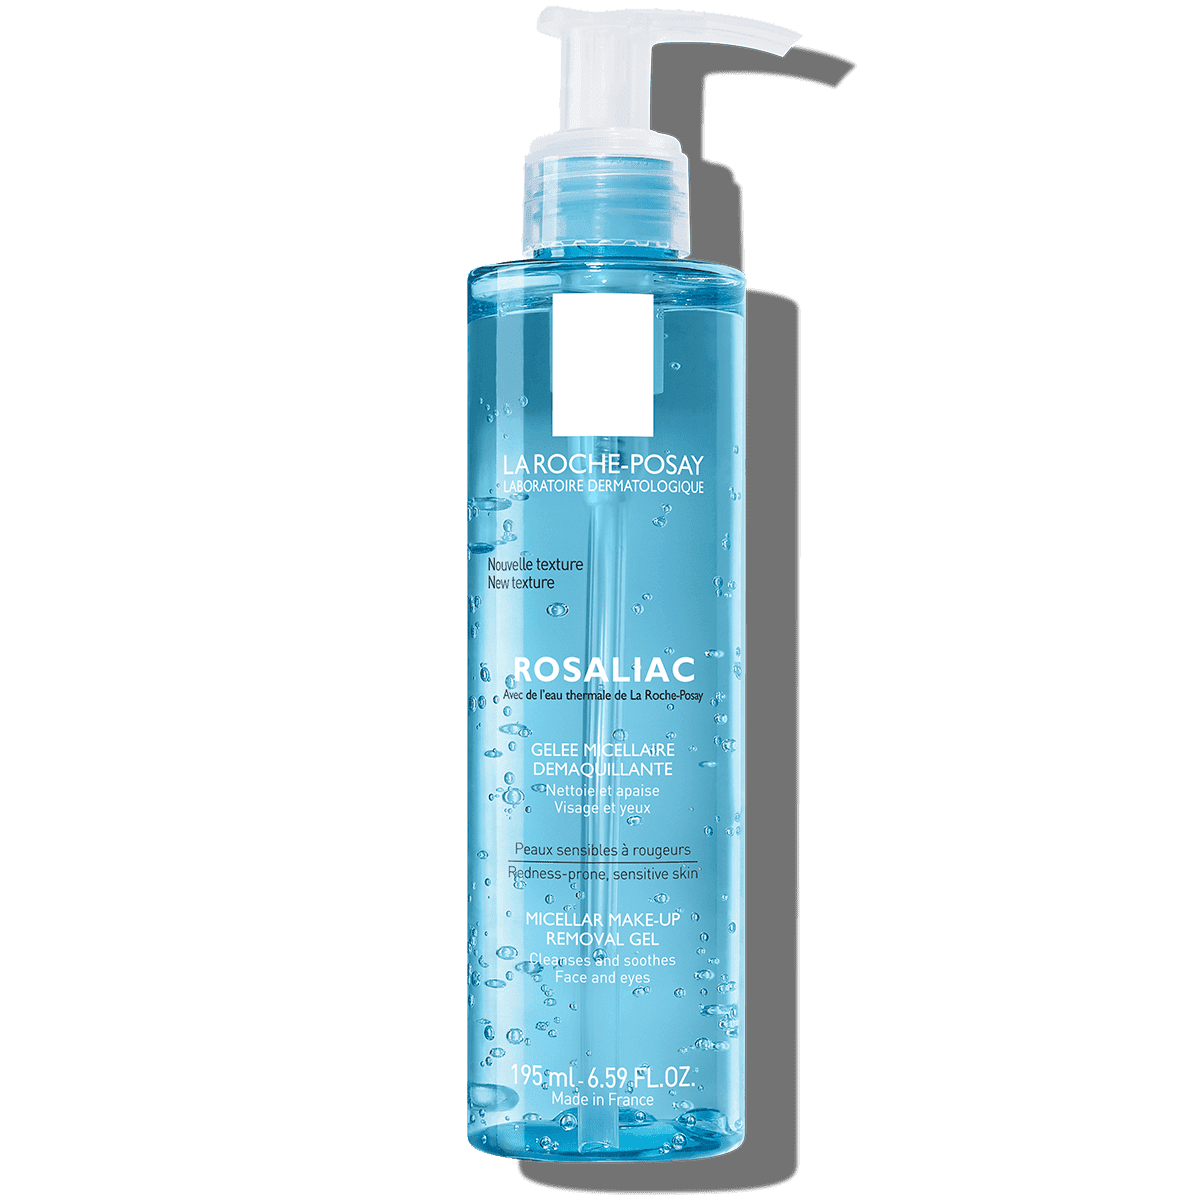 La Roche Posay ProductPage Face Cleanser Rosaliac Make Up Removal Gel